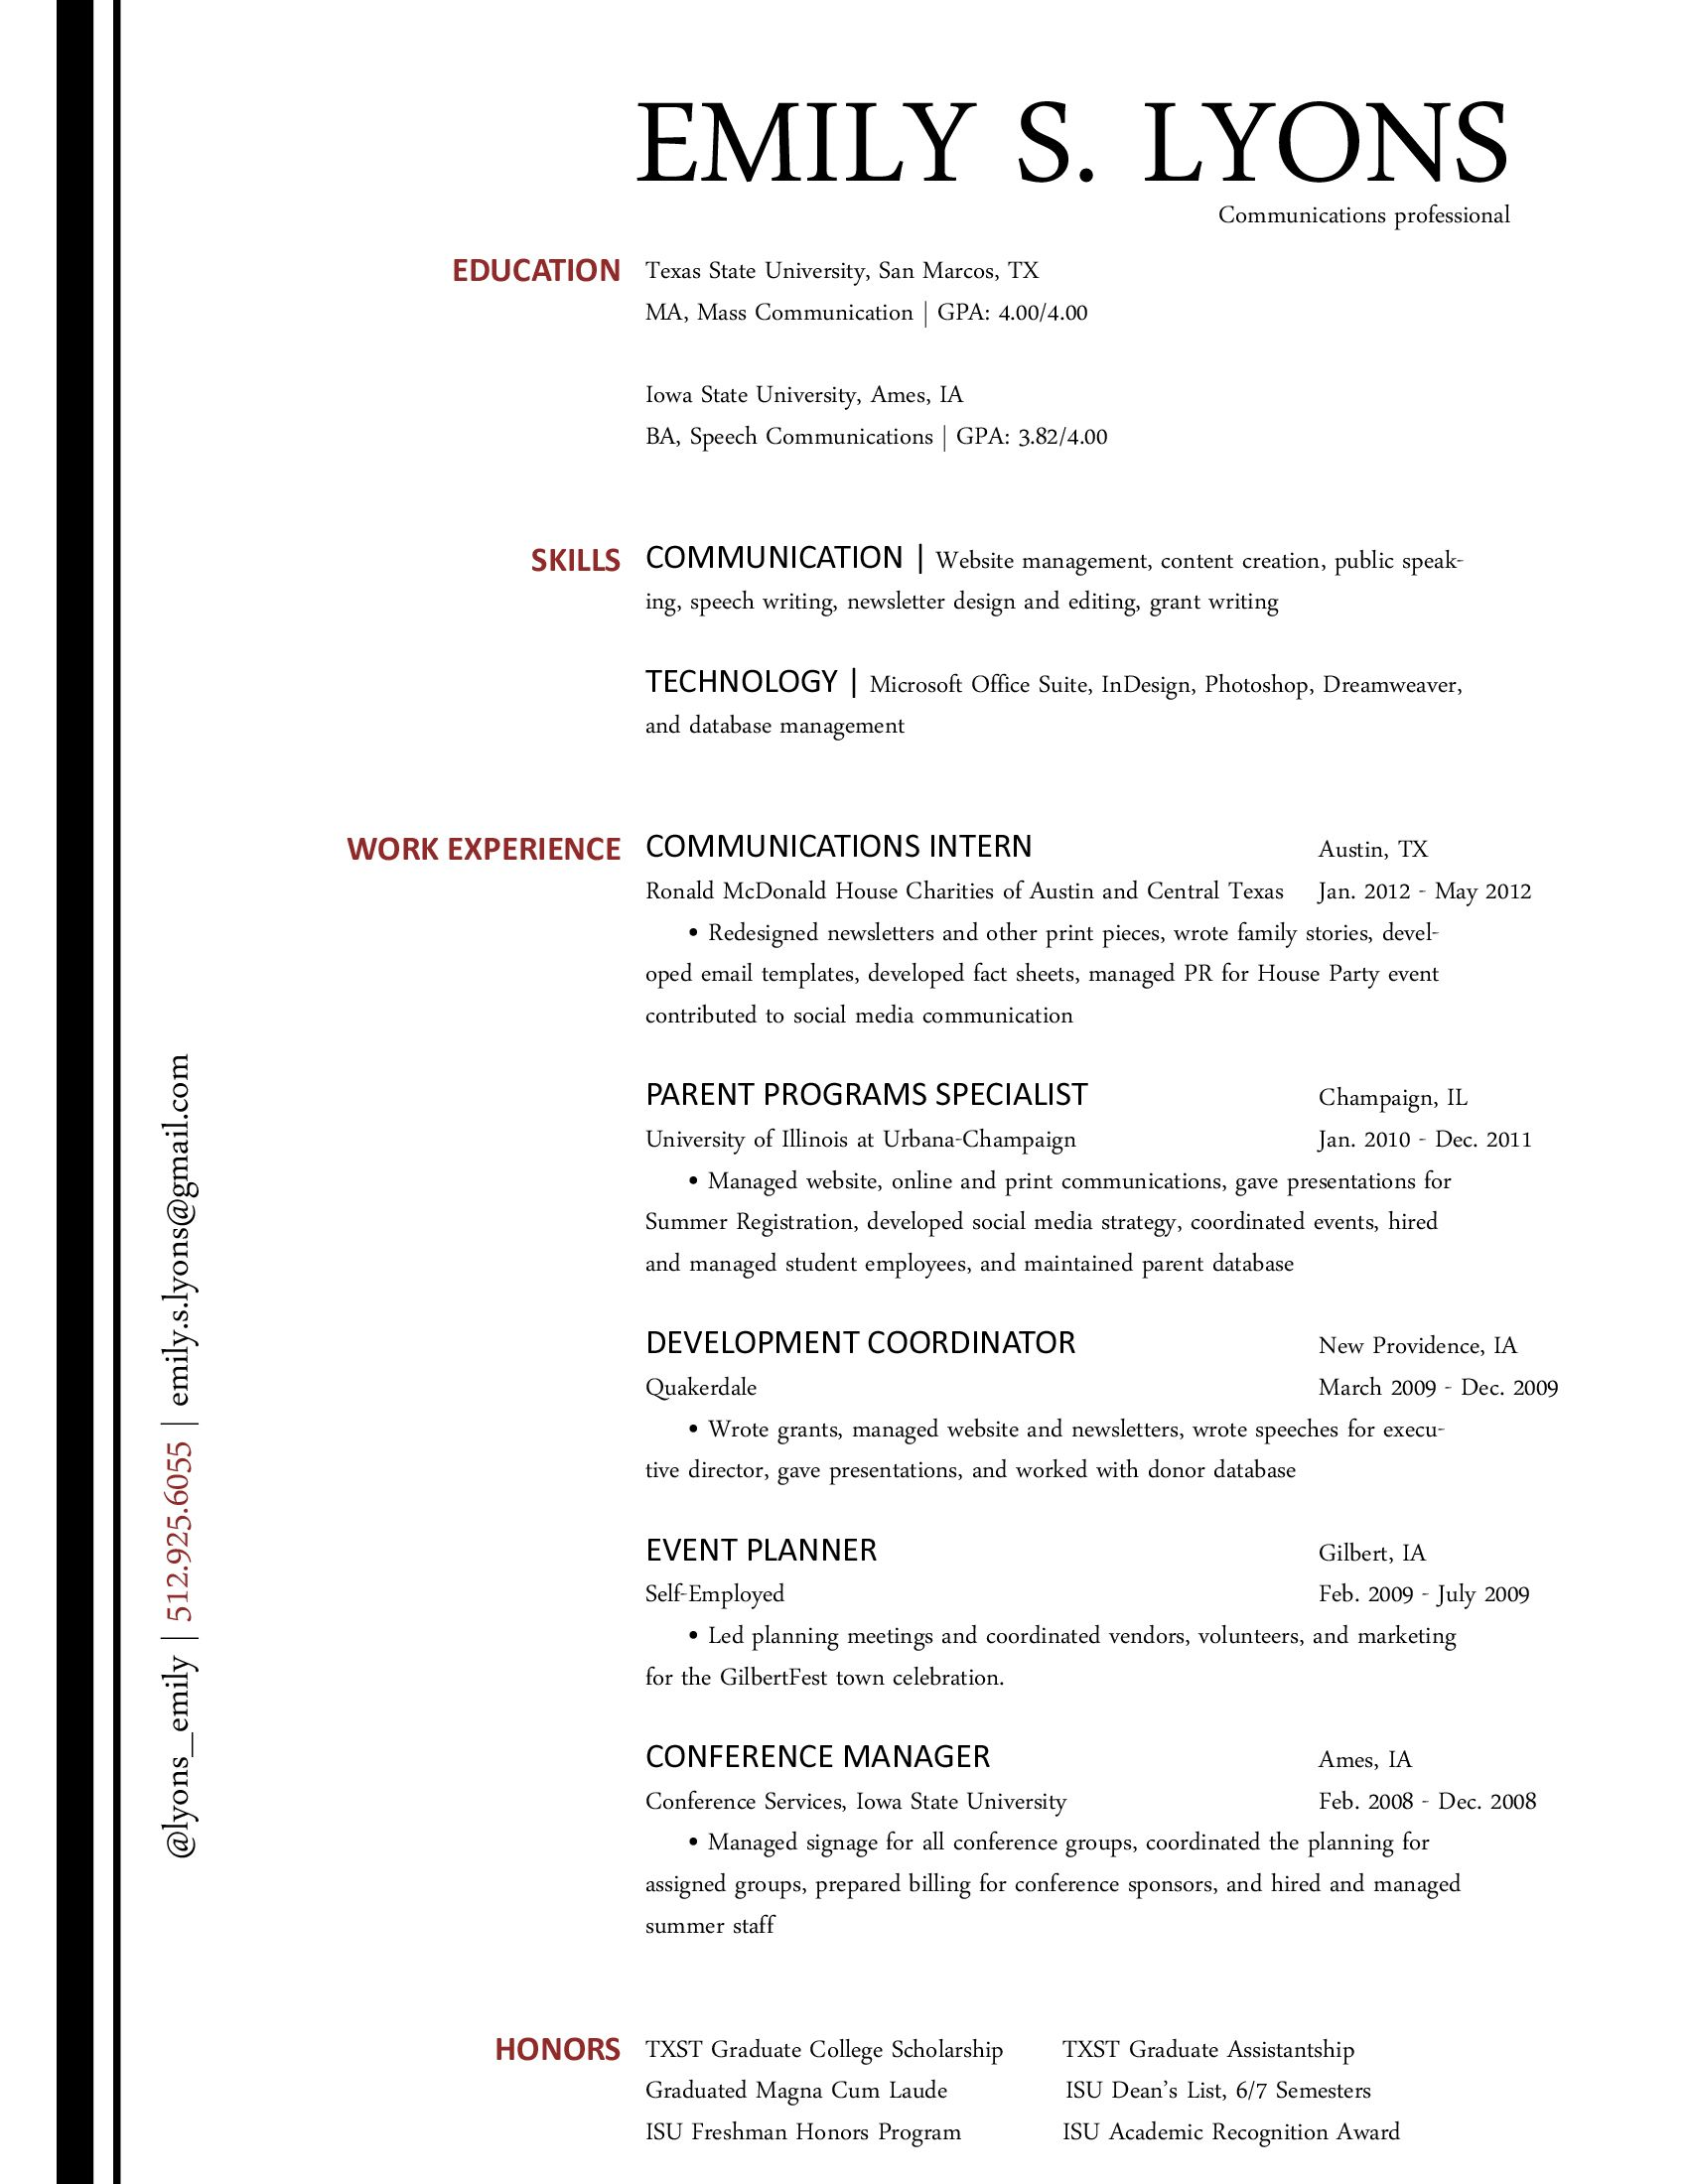 waitress sample resume certificate participation template word - Resume Samples In Communications